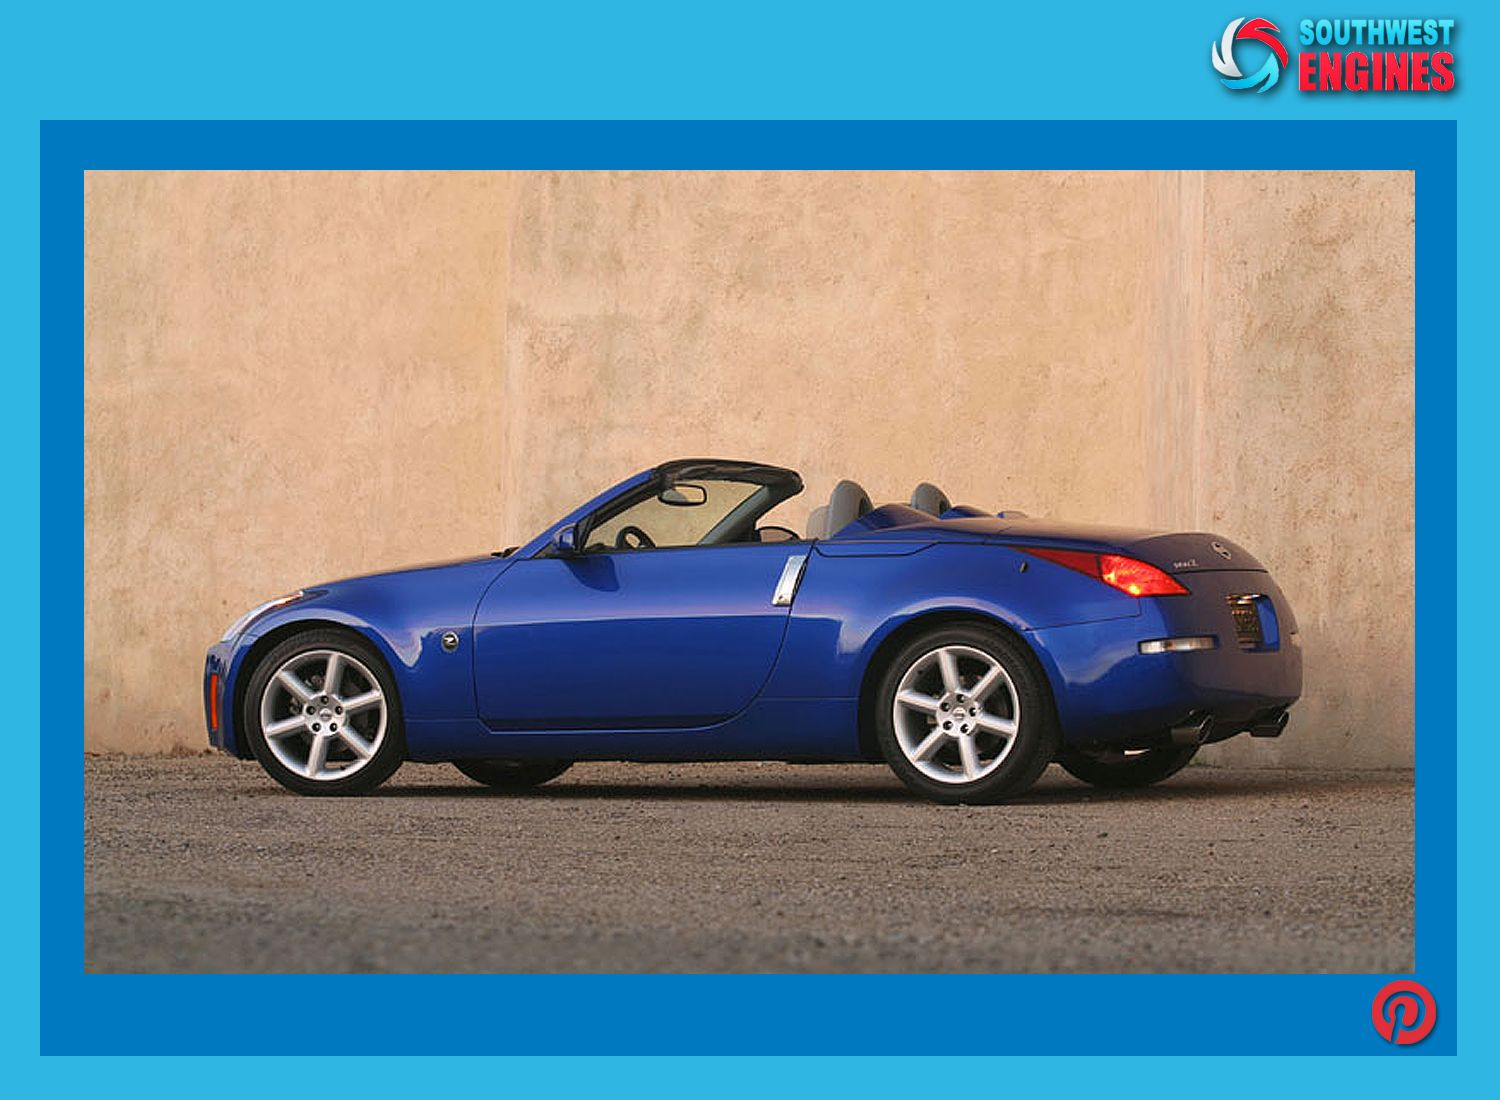 #SouthWestEngines Josse Car Is One Of The Home Sports Vehicles Sports Cars  Josse Car Indigo